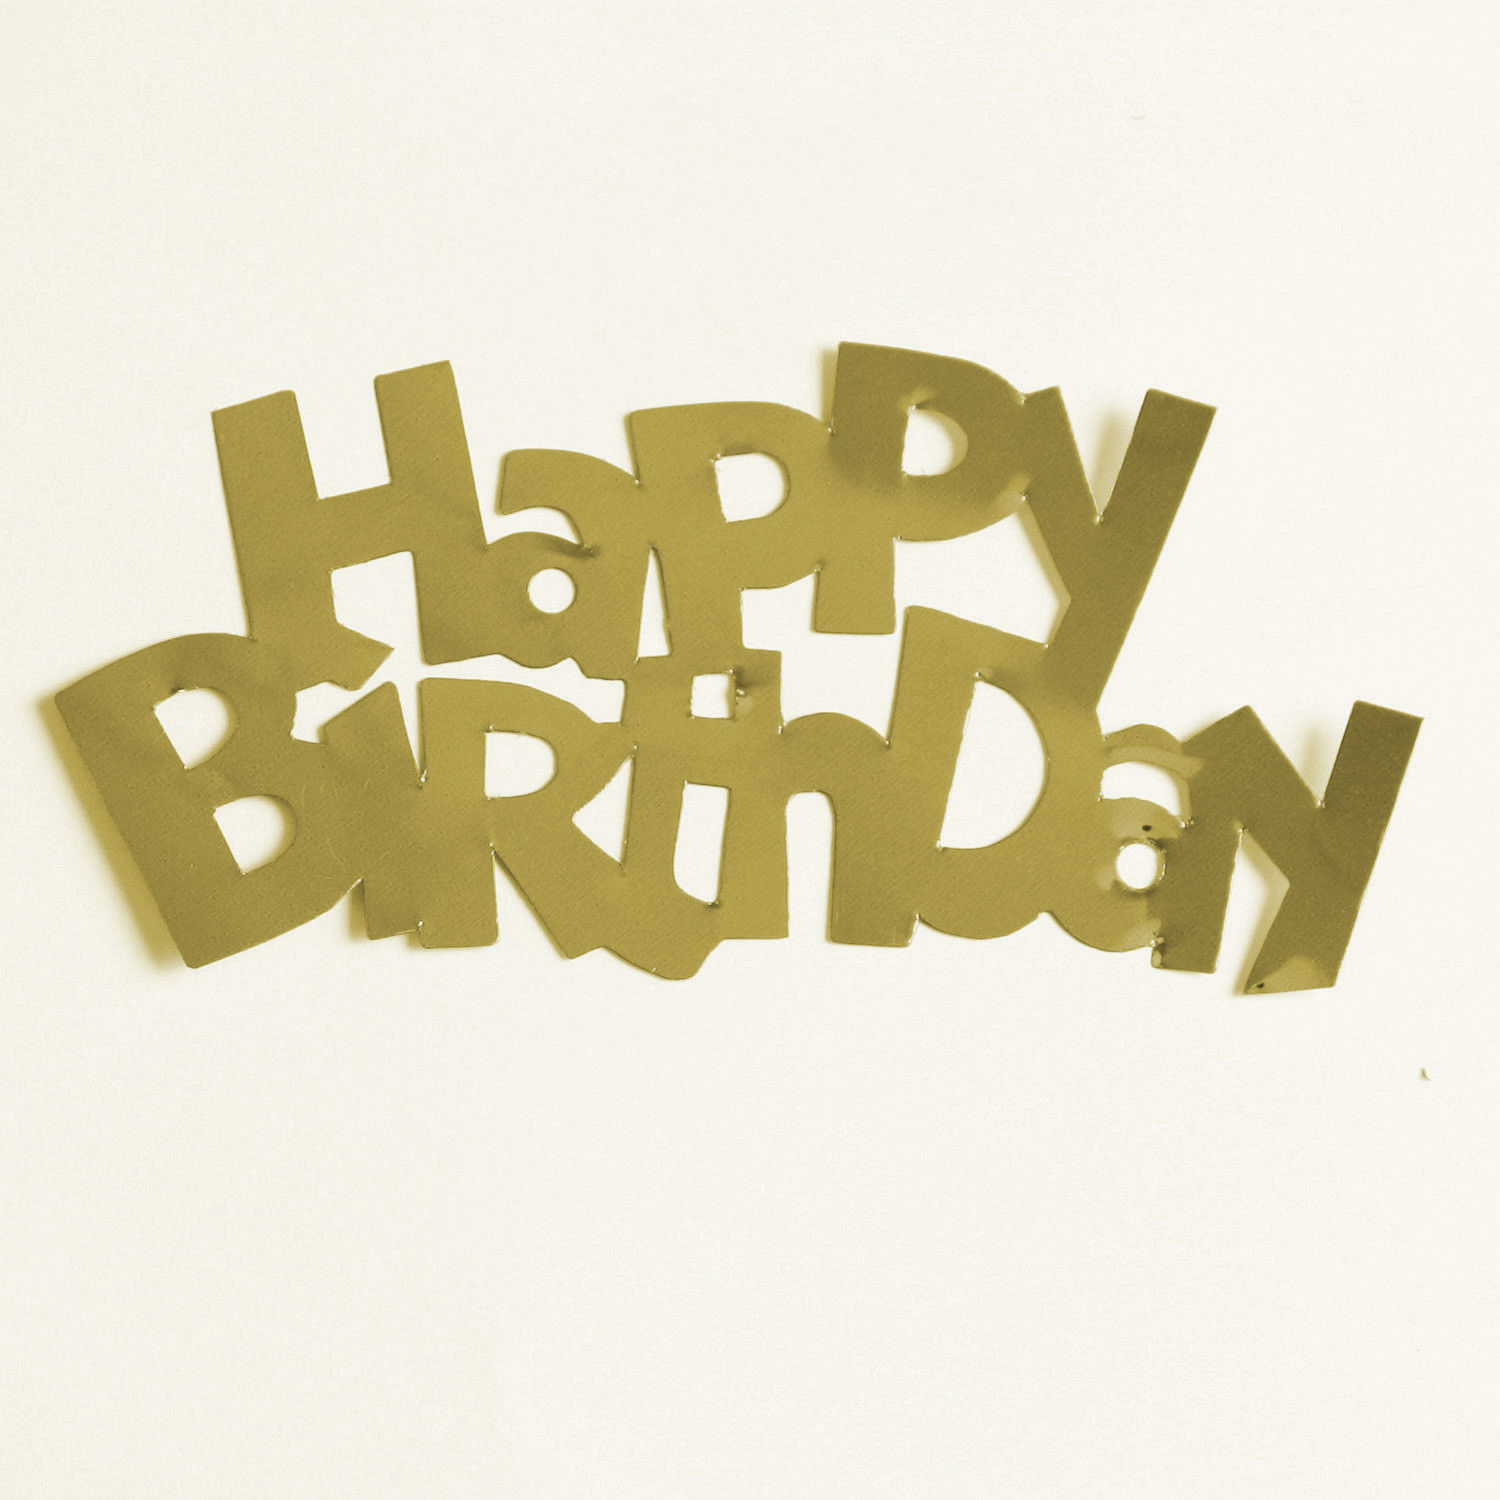 Happy Birthday Words Mylar Cut-Out Shapes Die Cut  FREE SHIPPING